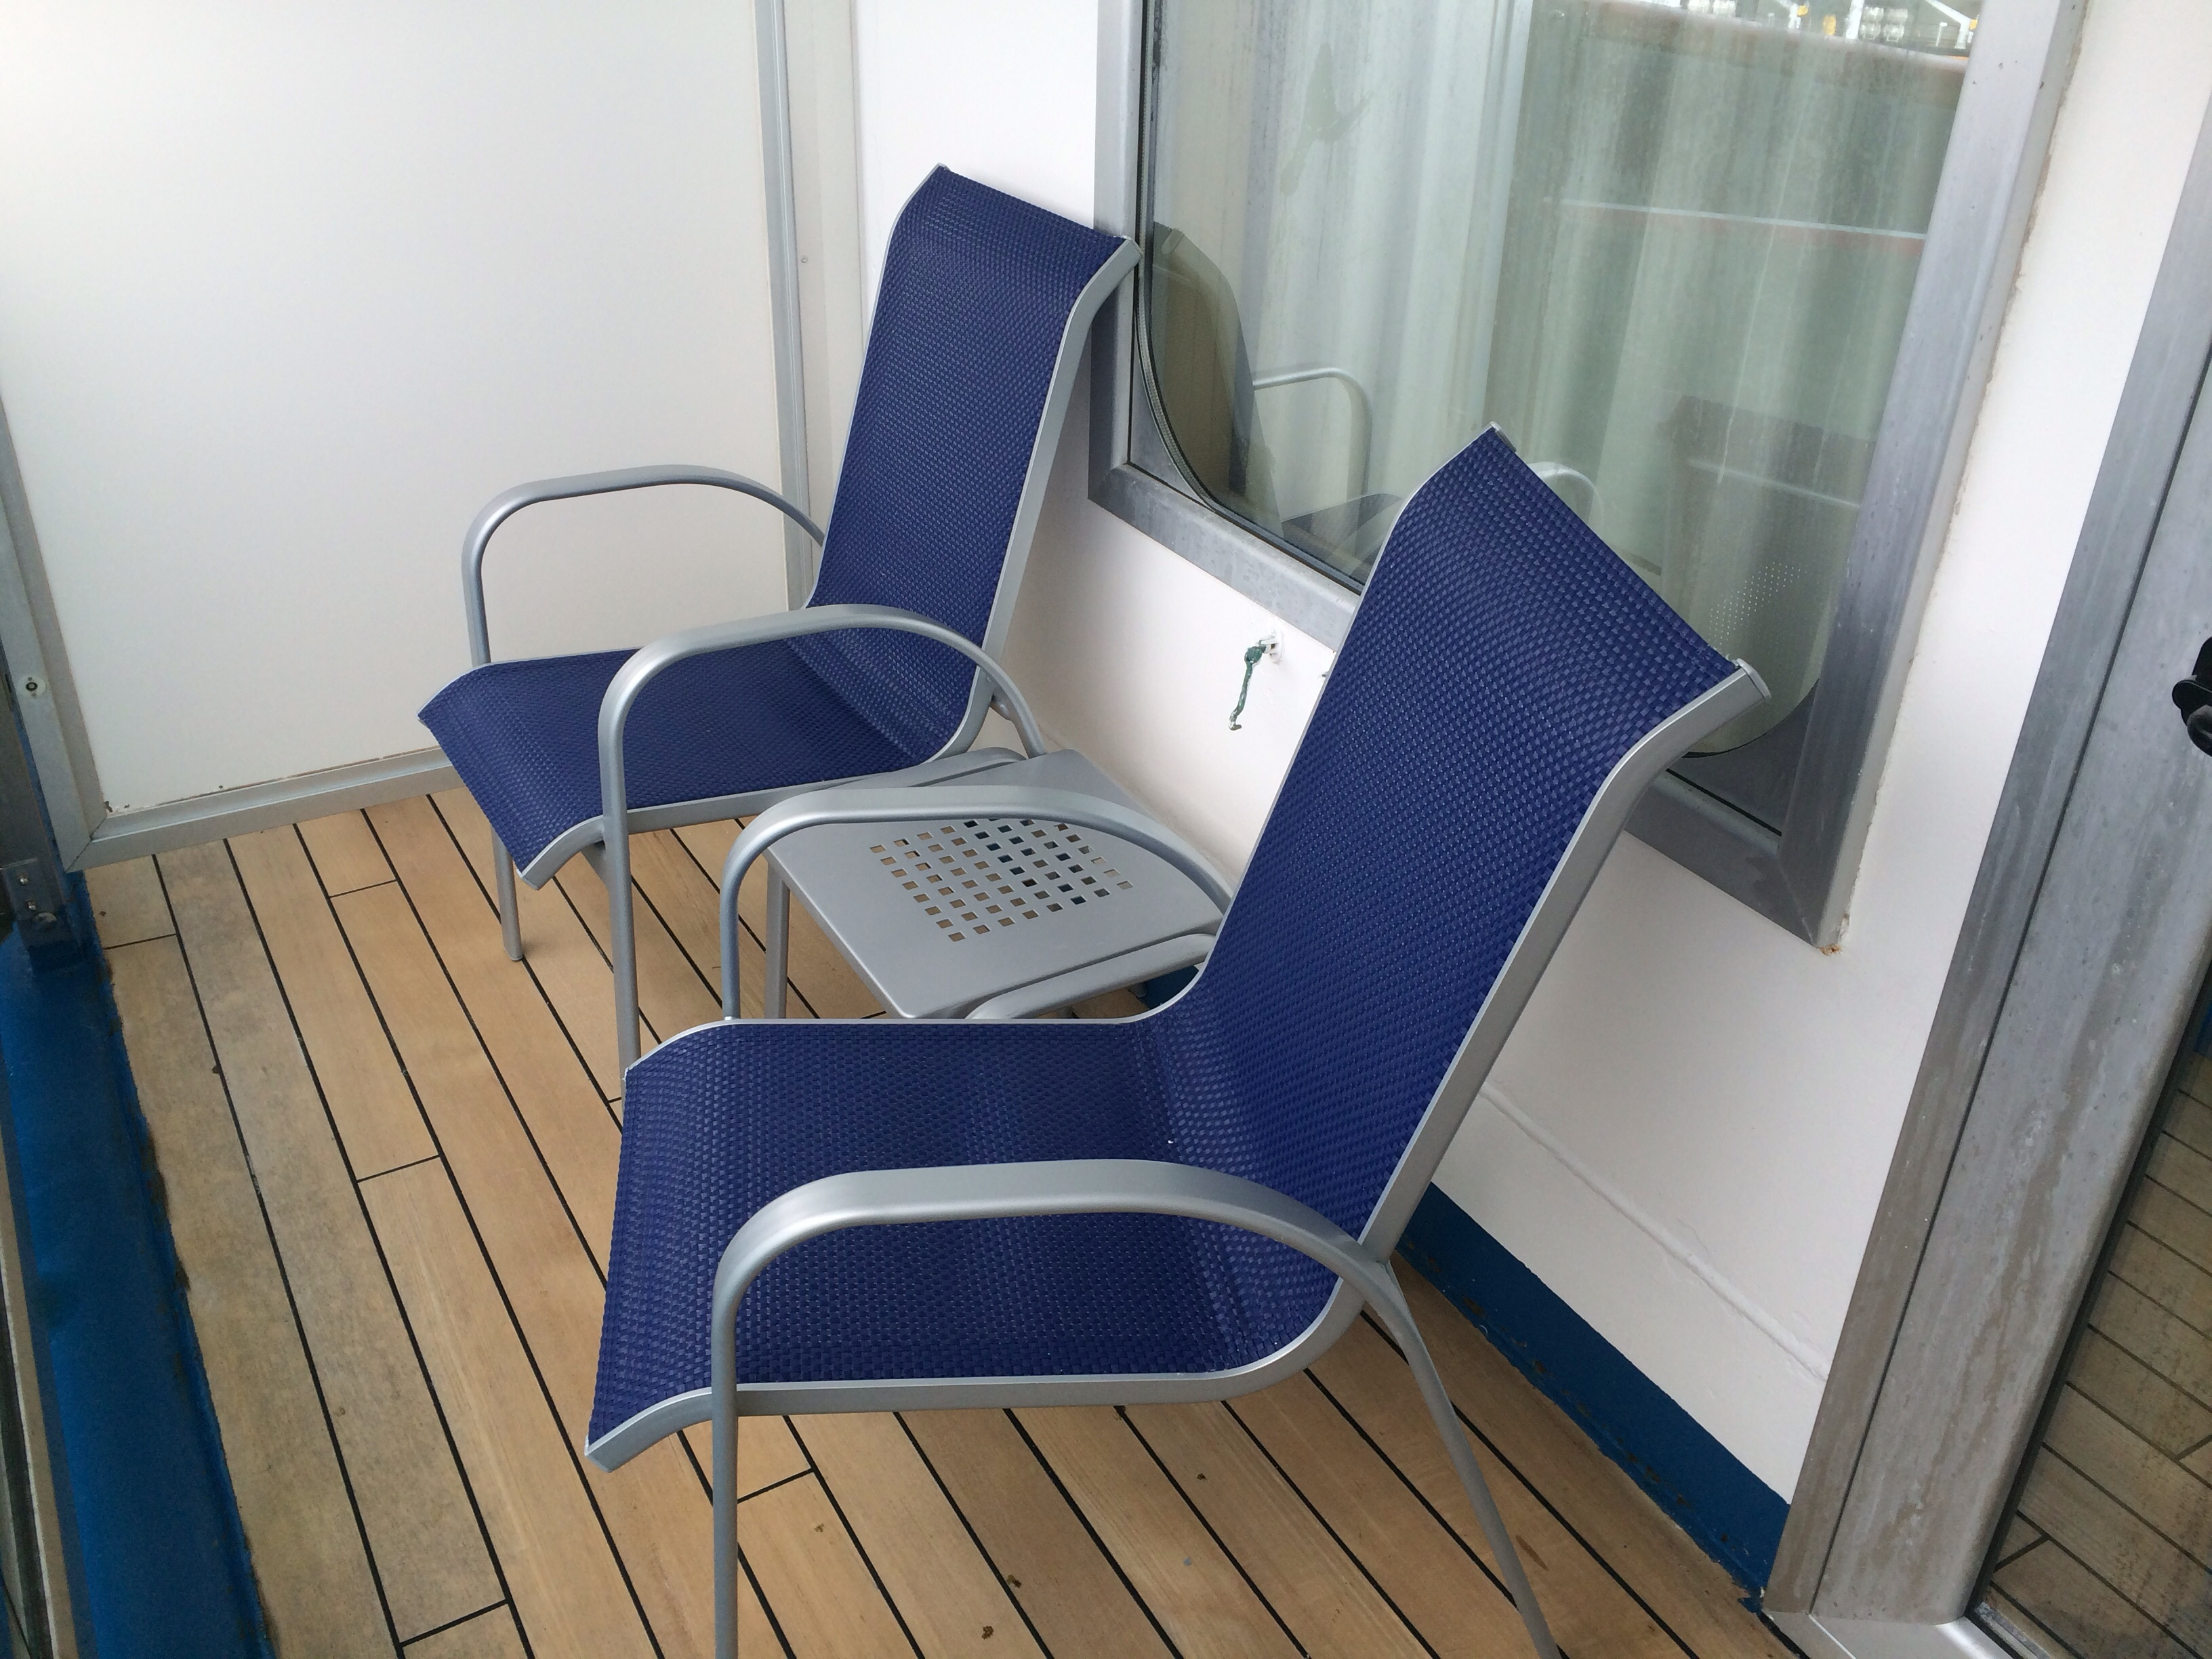 Pictures of our balcony stateroom 8152 on the all new for On our balcony